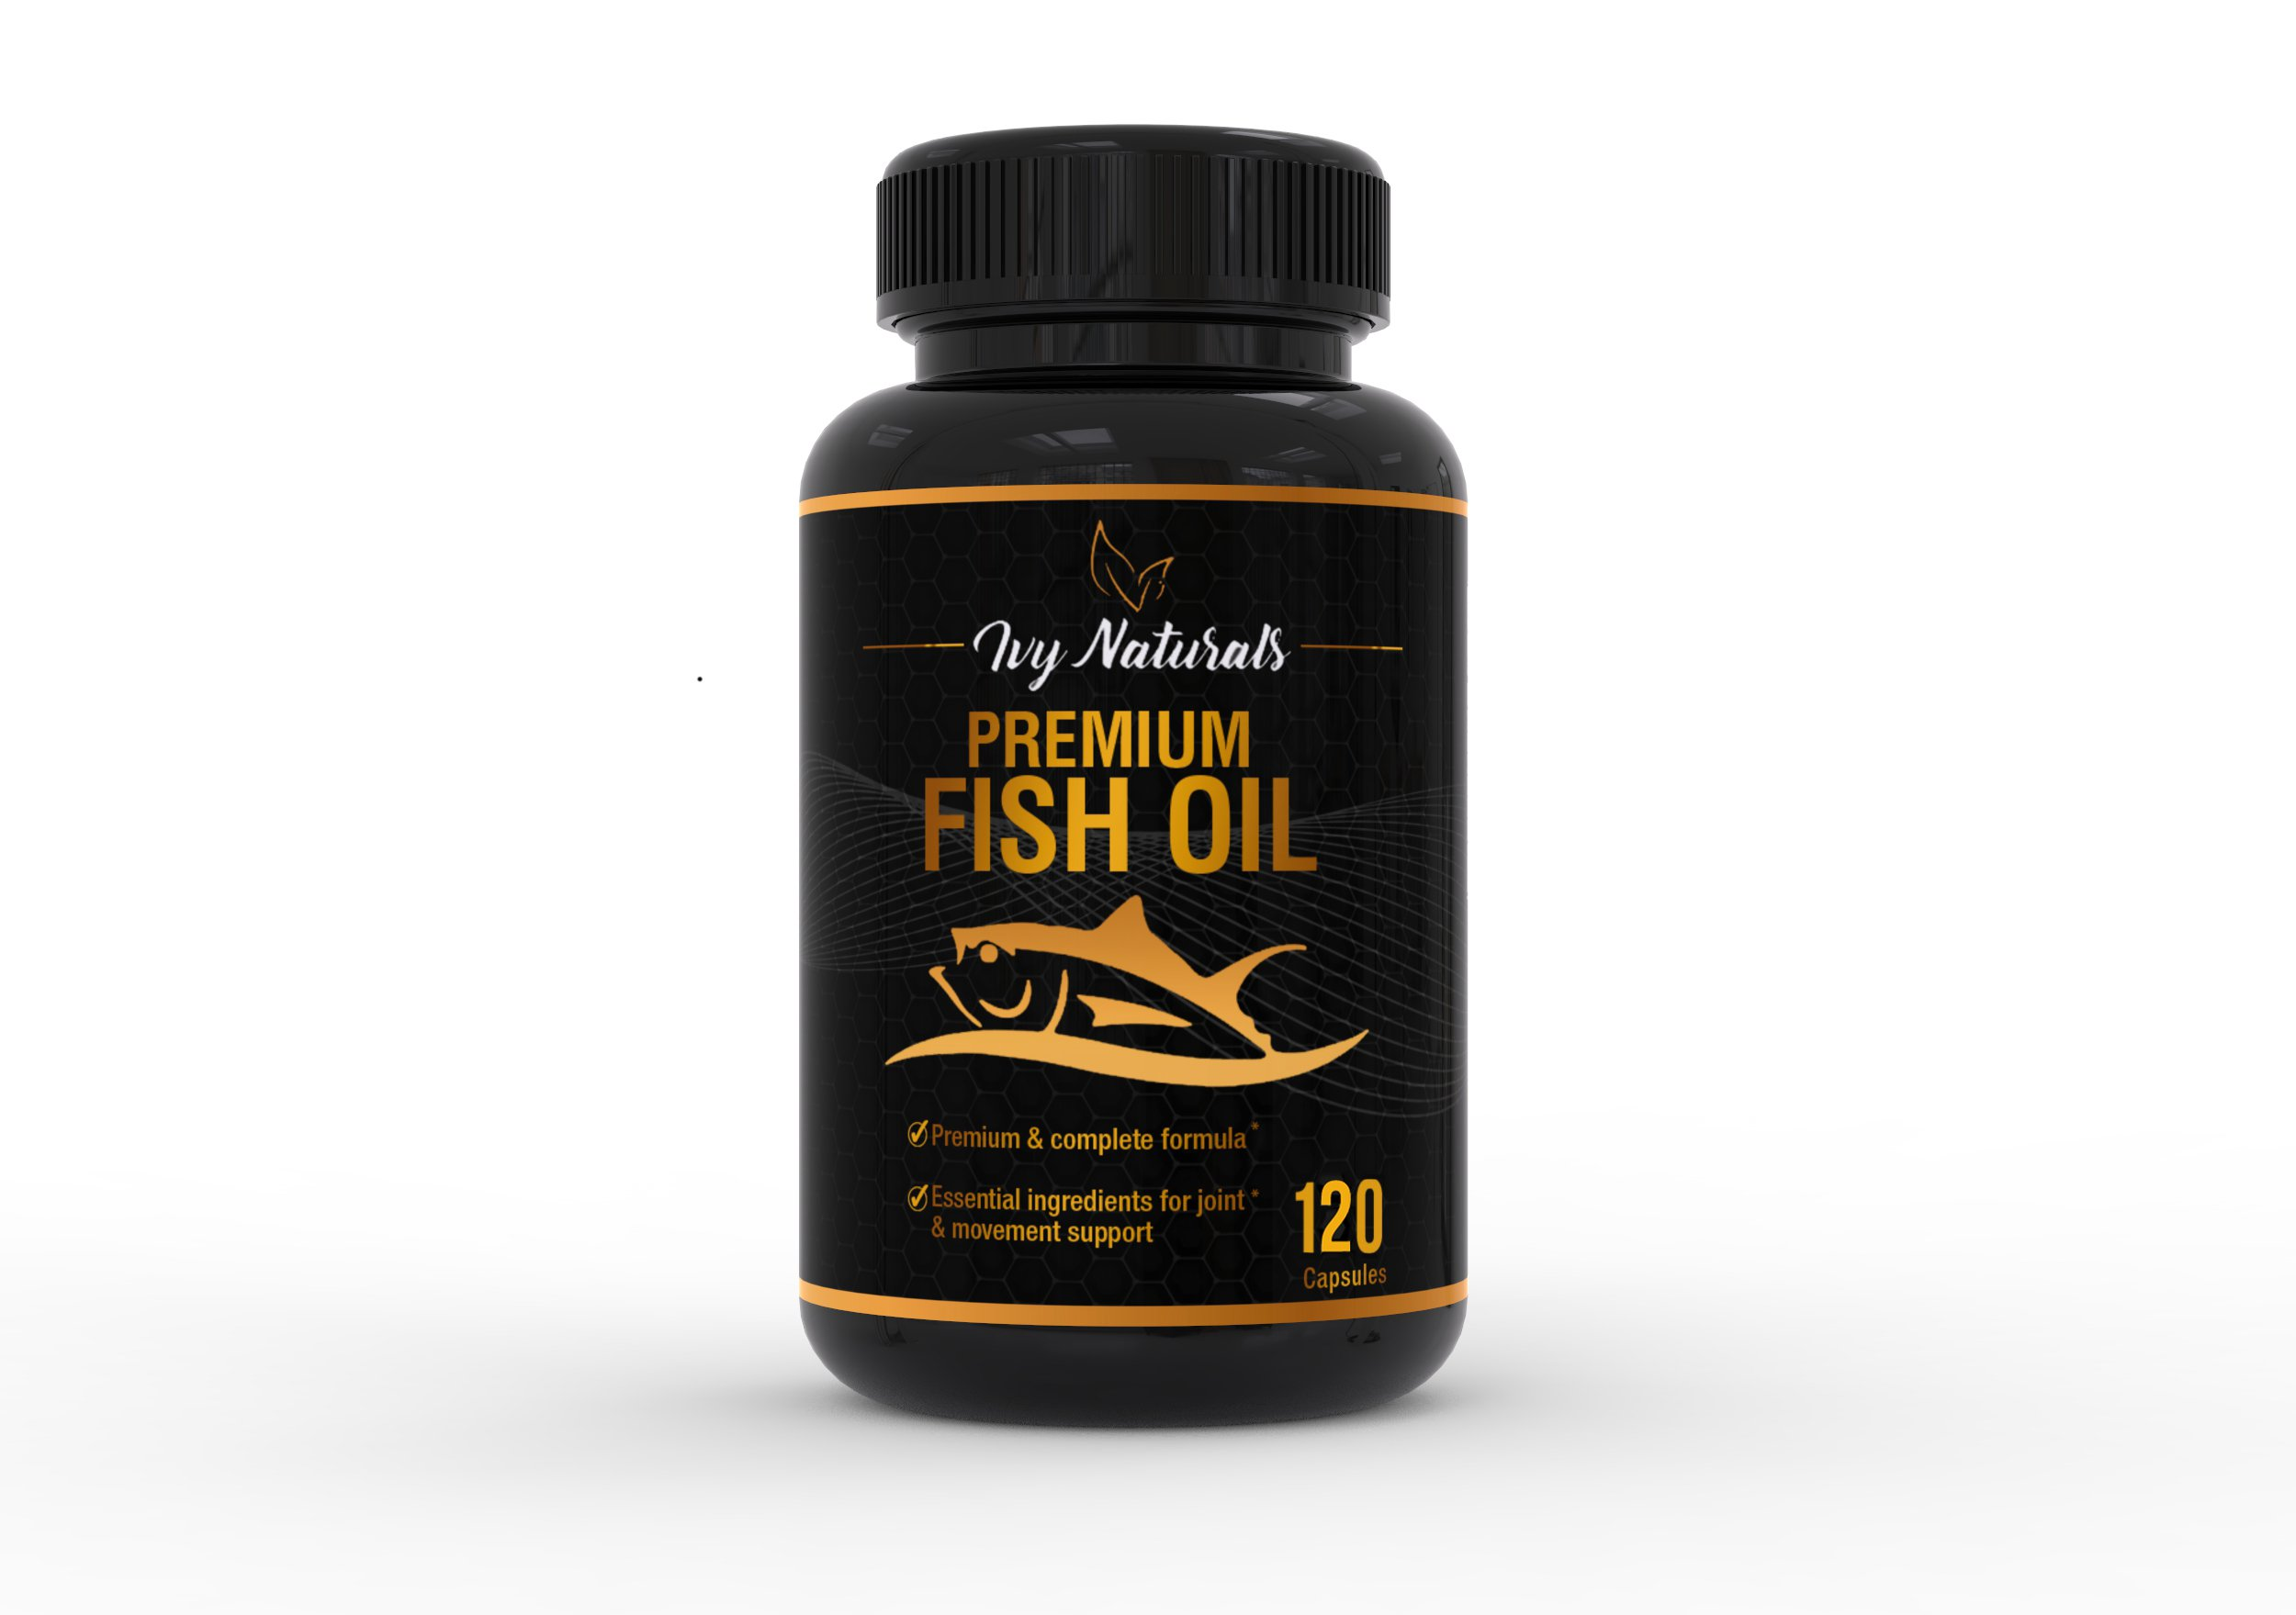 Fish Oil by Ivy Naturals    120 Powerful Capsules    Packed with Premium Omega-3s, DHA, & EPA    Promotes Heart Health    Supports Cell Growth and Metabolic Functions    100% Satisfaction Guarantee